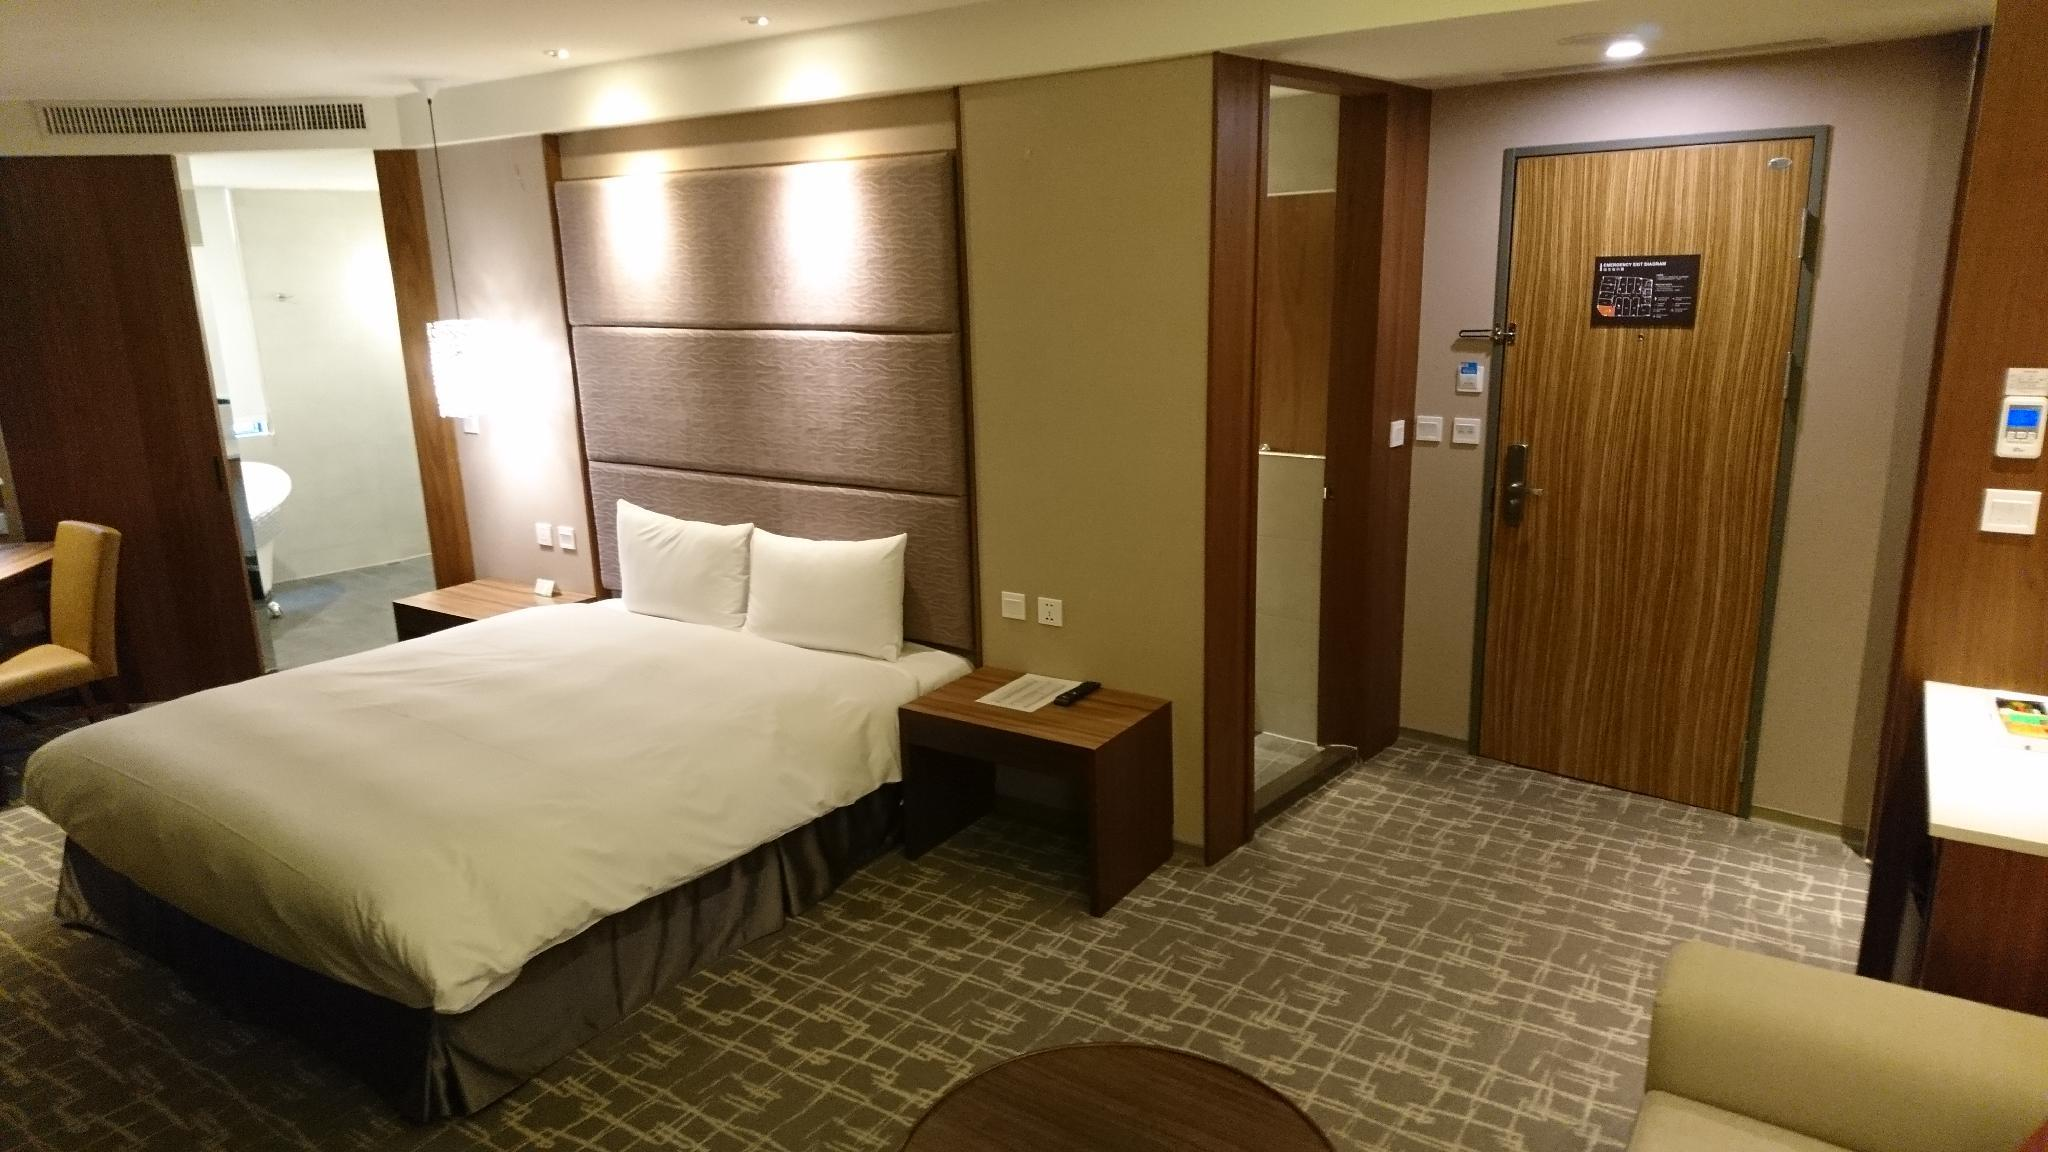 行政套房 (Executive Suite Room )